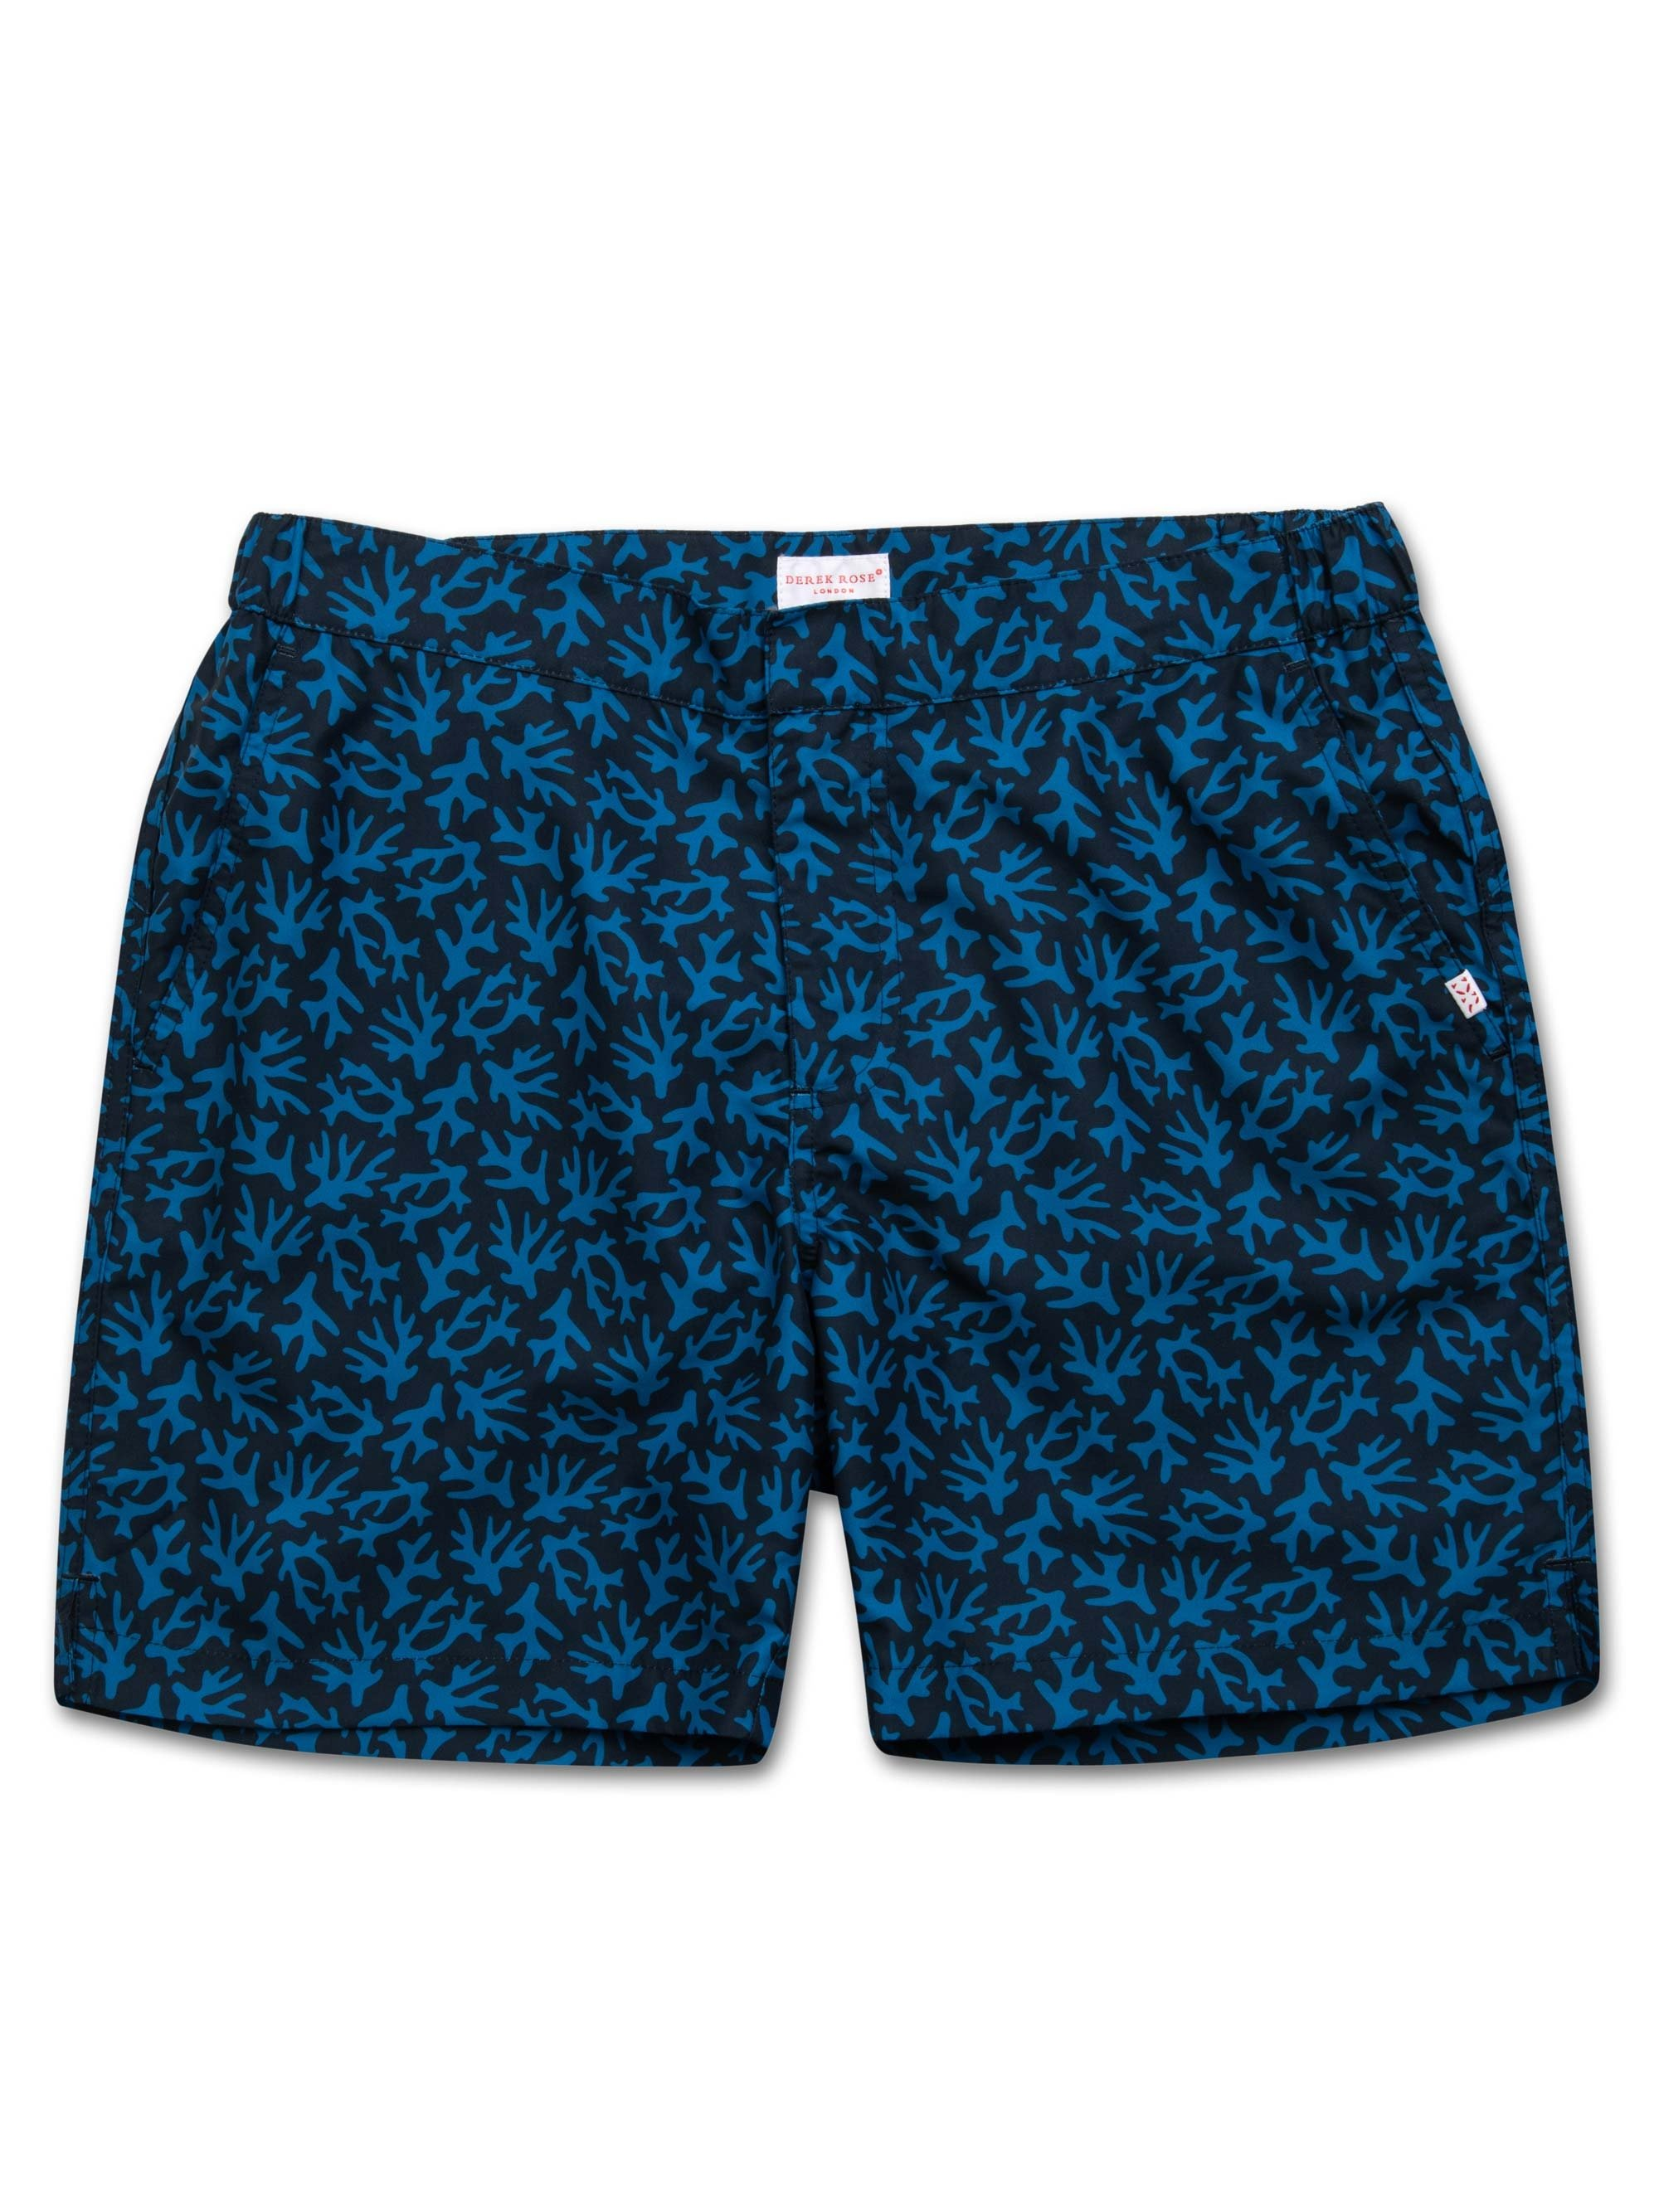 Men's Modern Fit Swim Shorts Maui 17 Ocean